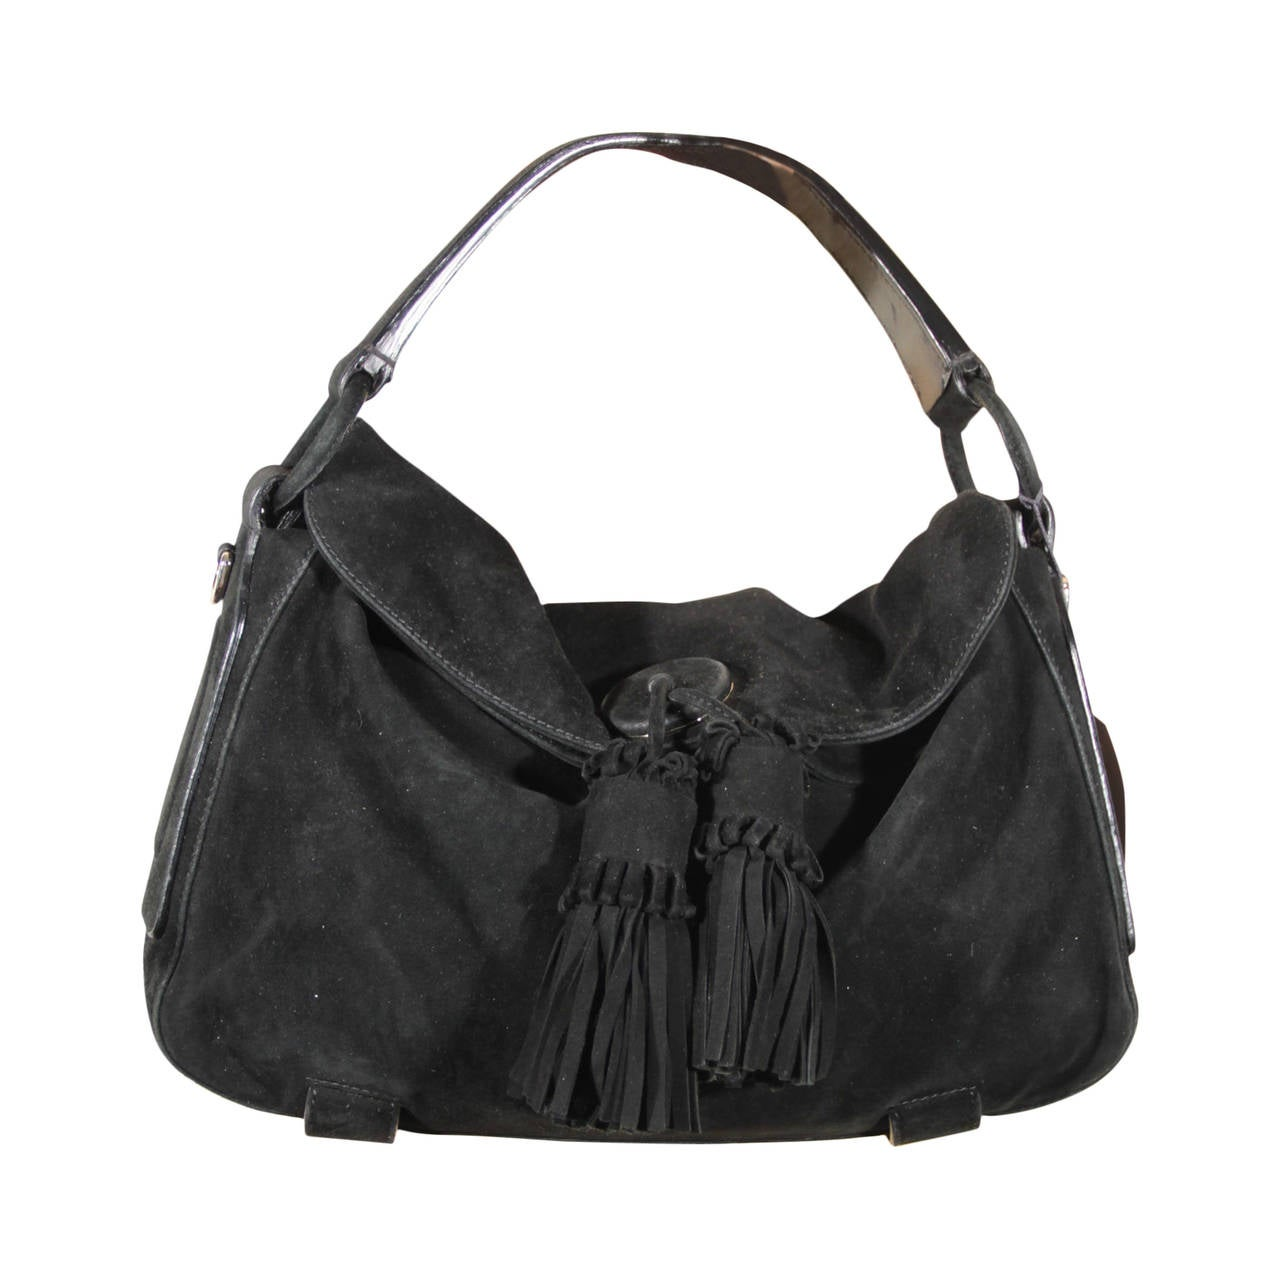 Yves Saint Laurent Black Suede Shoulder Bag Tote Hobo W